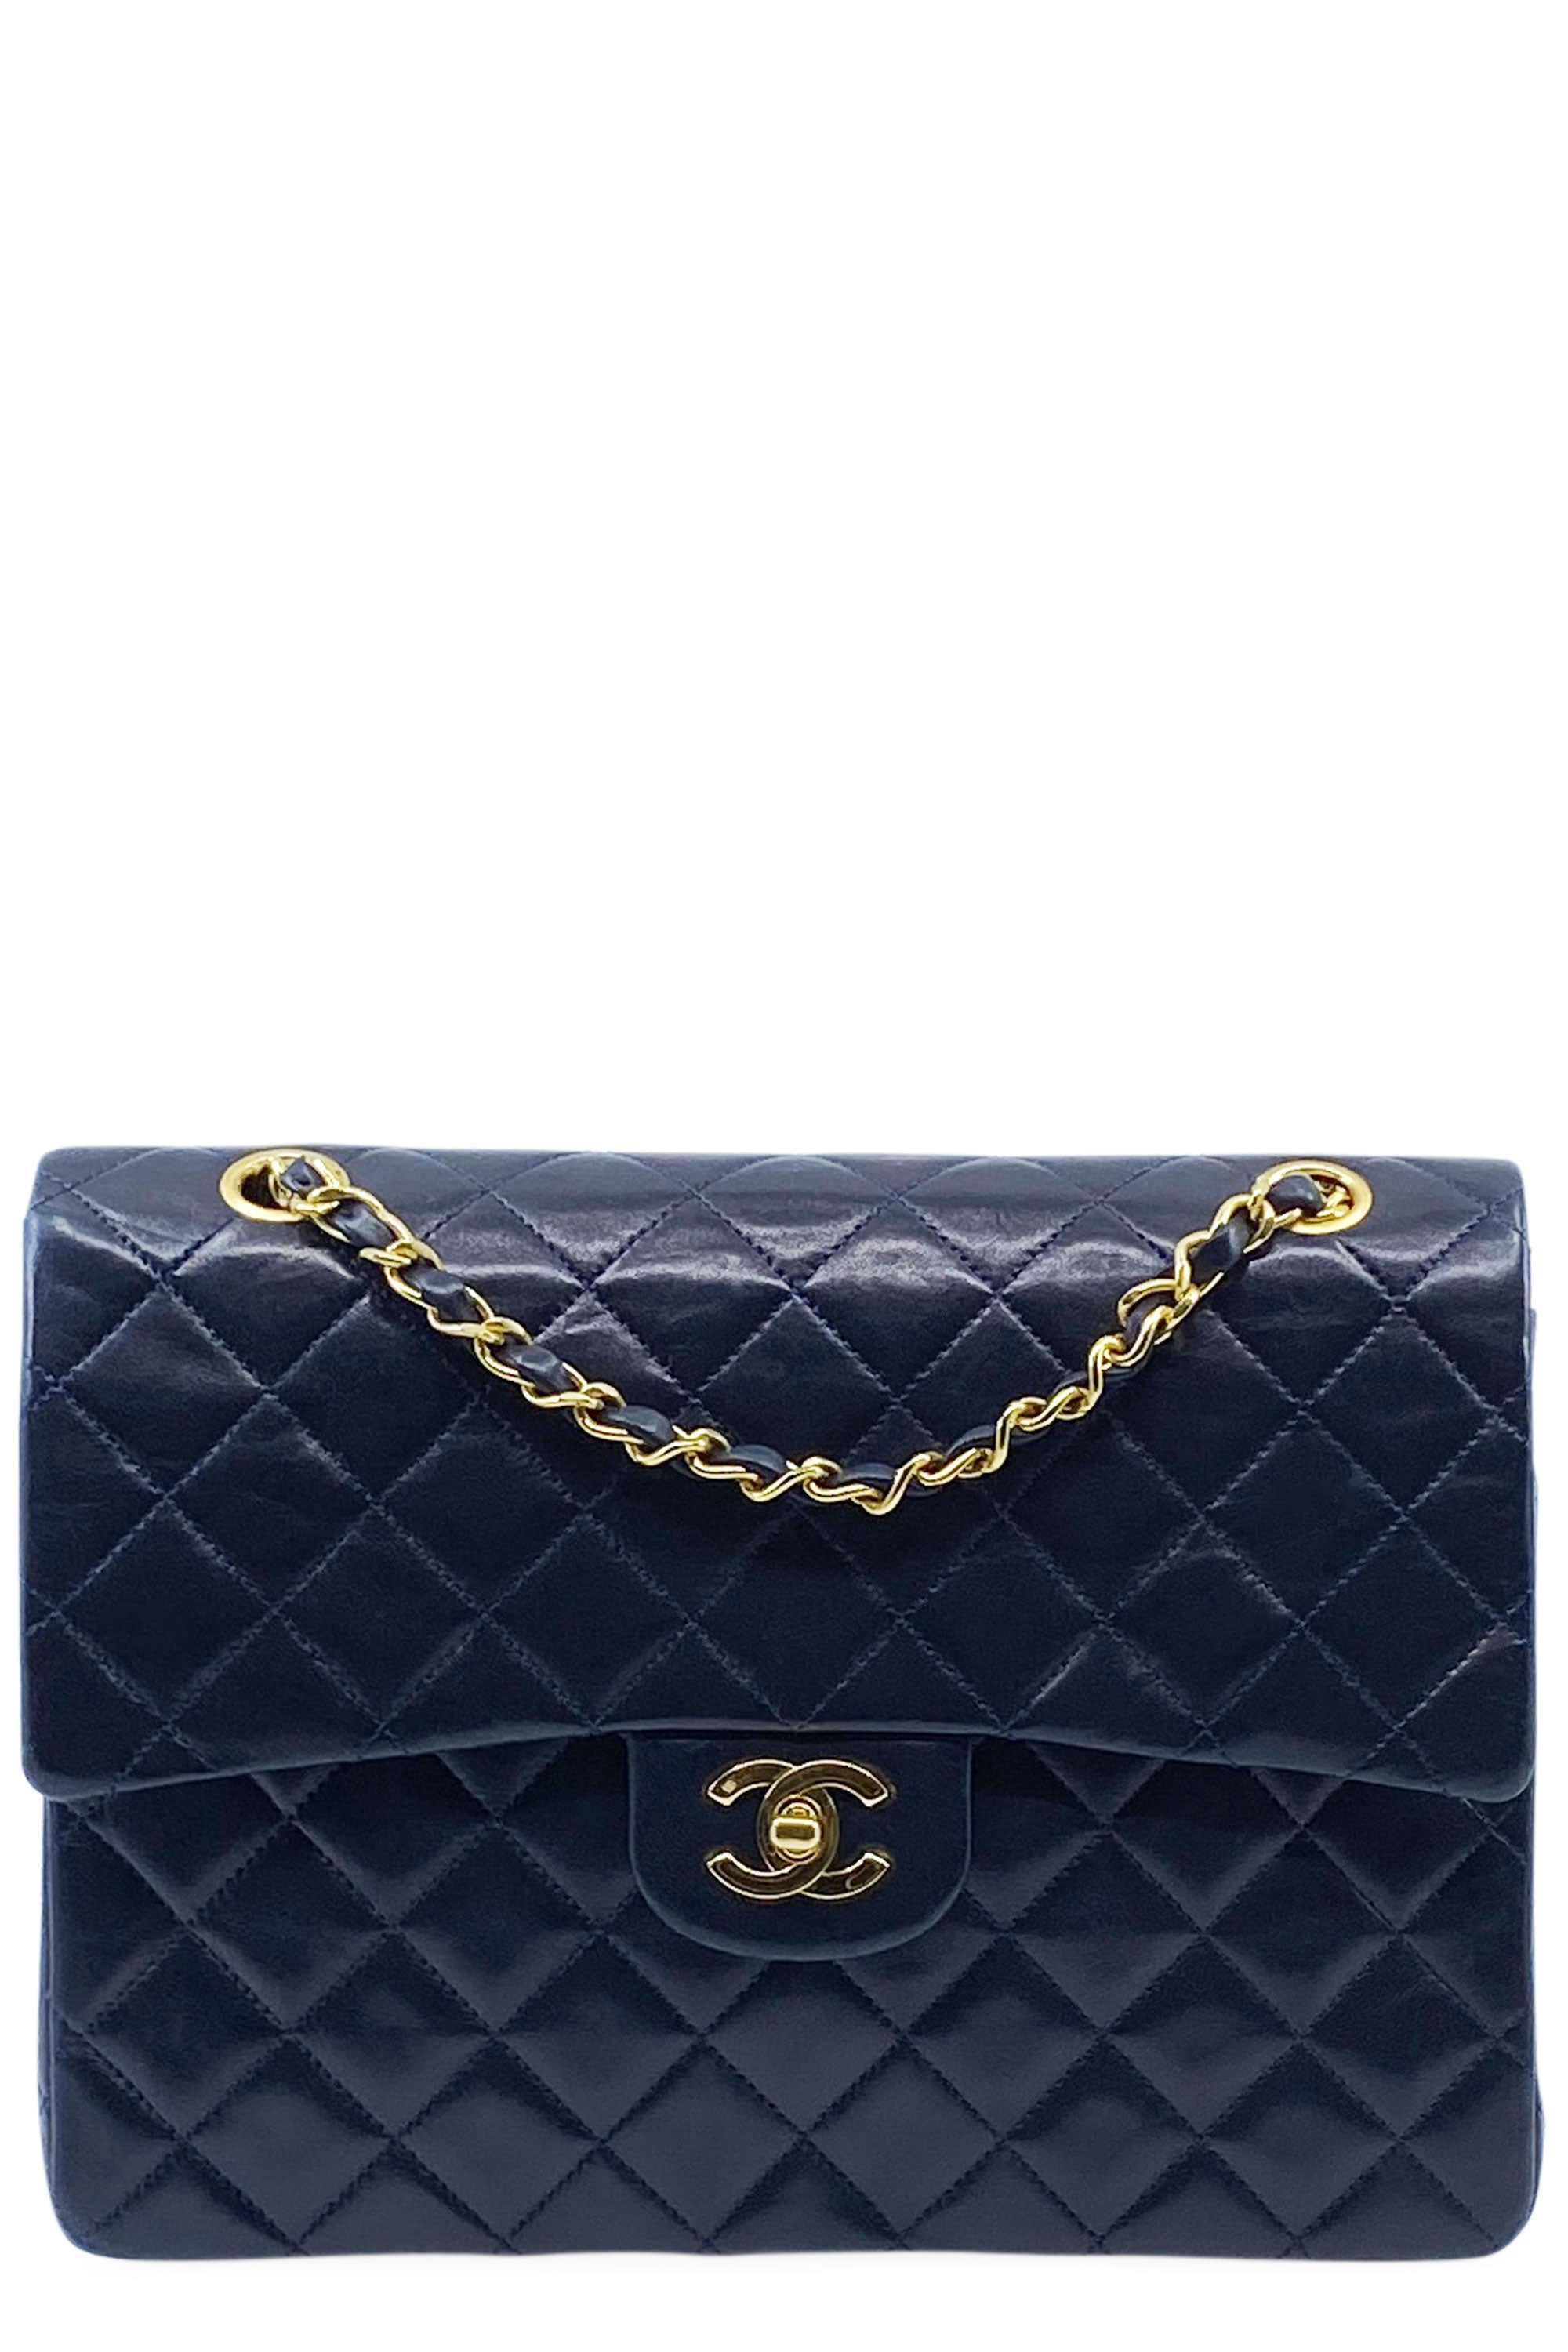 CHANEL Vintage Double Flap Bag Nightblue Square Frontansicht